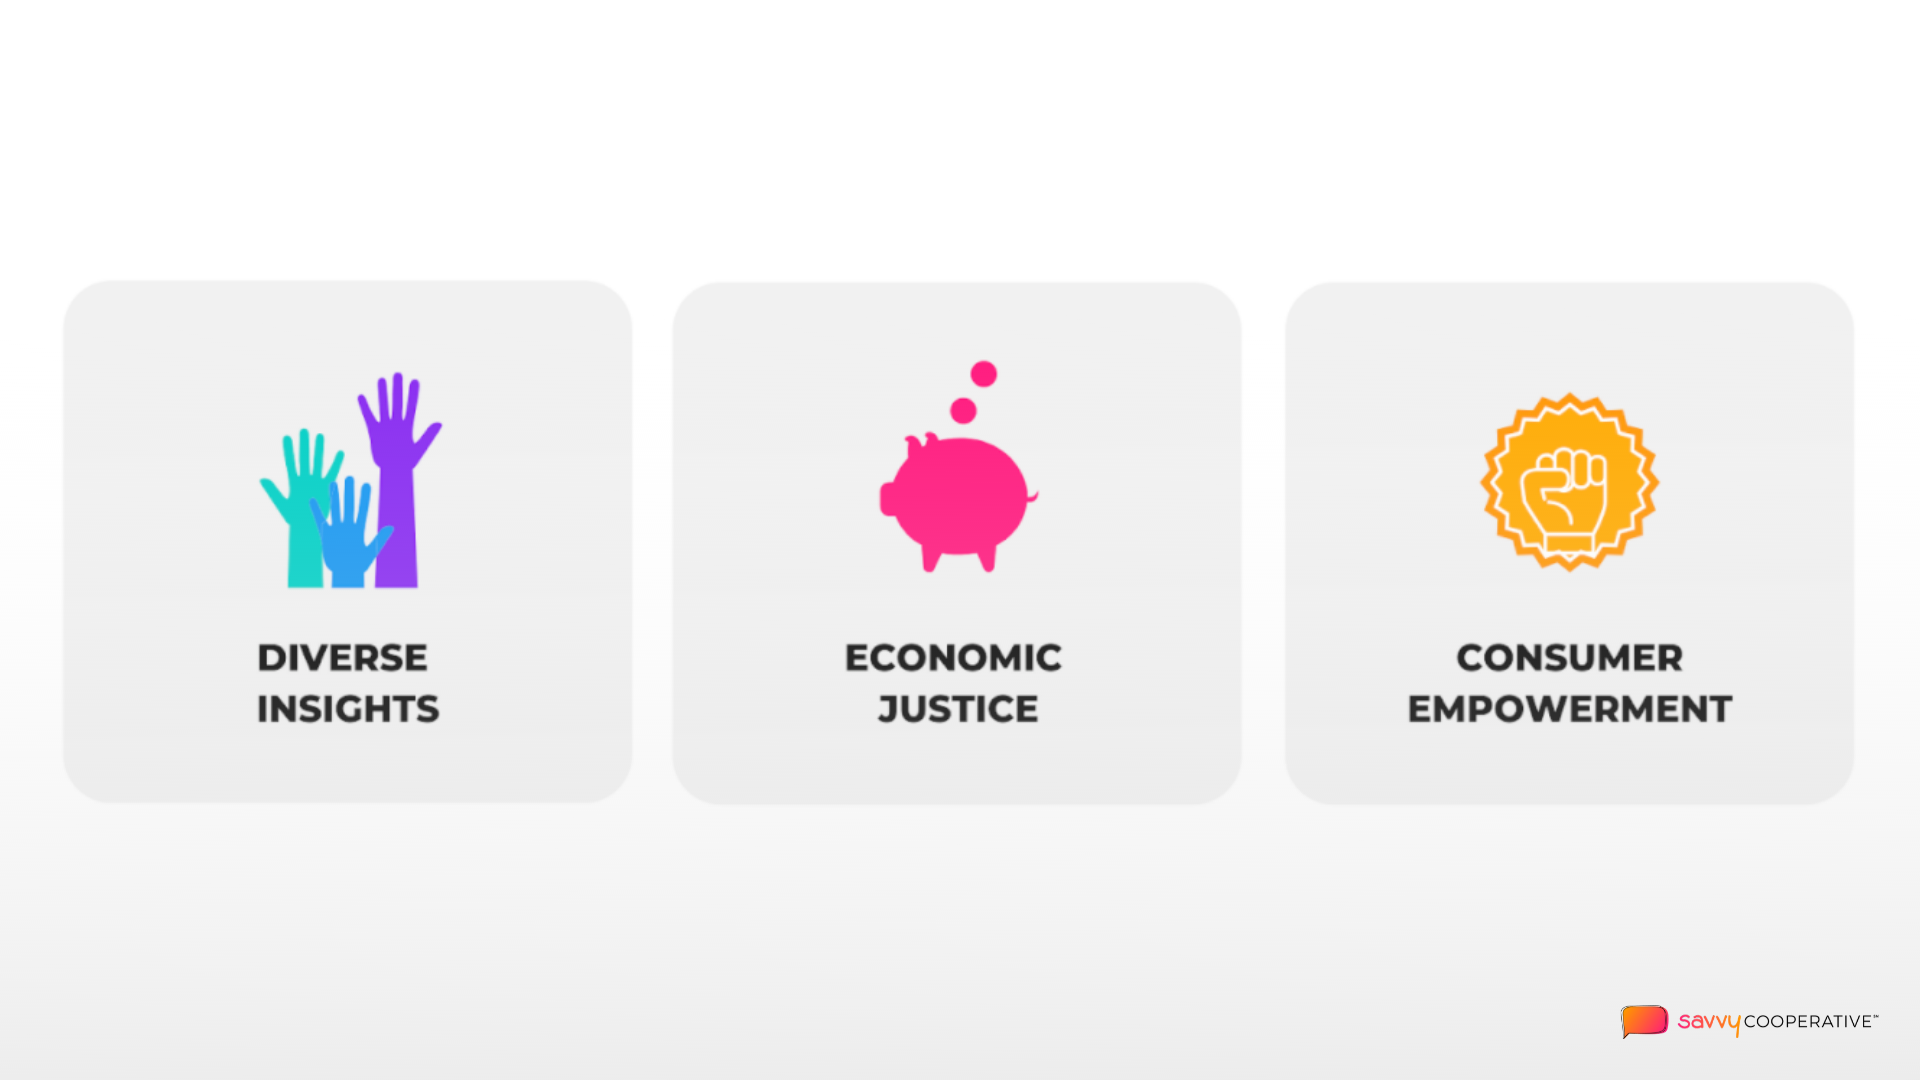 savvy coop value pillars of diverse insights, economic justice, consumer empowerment